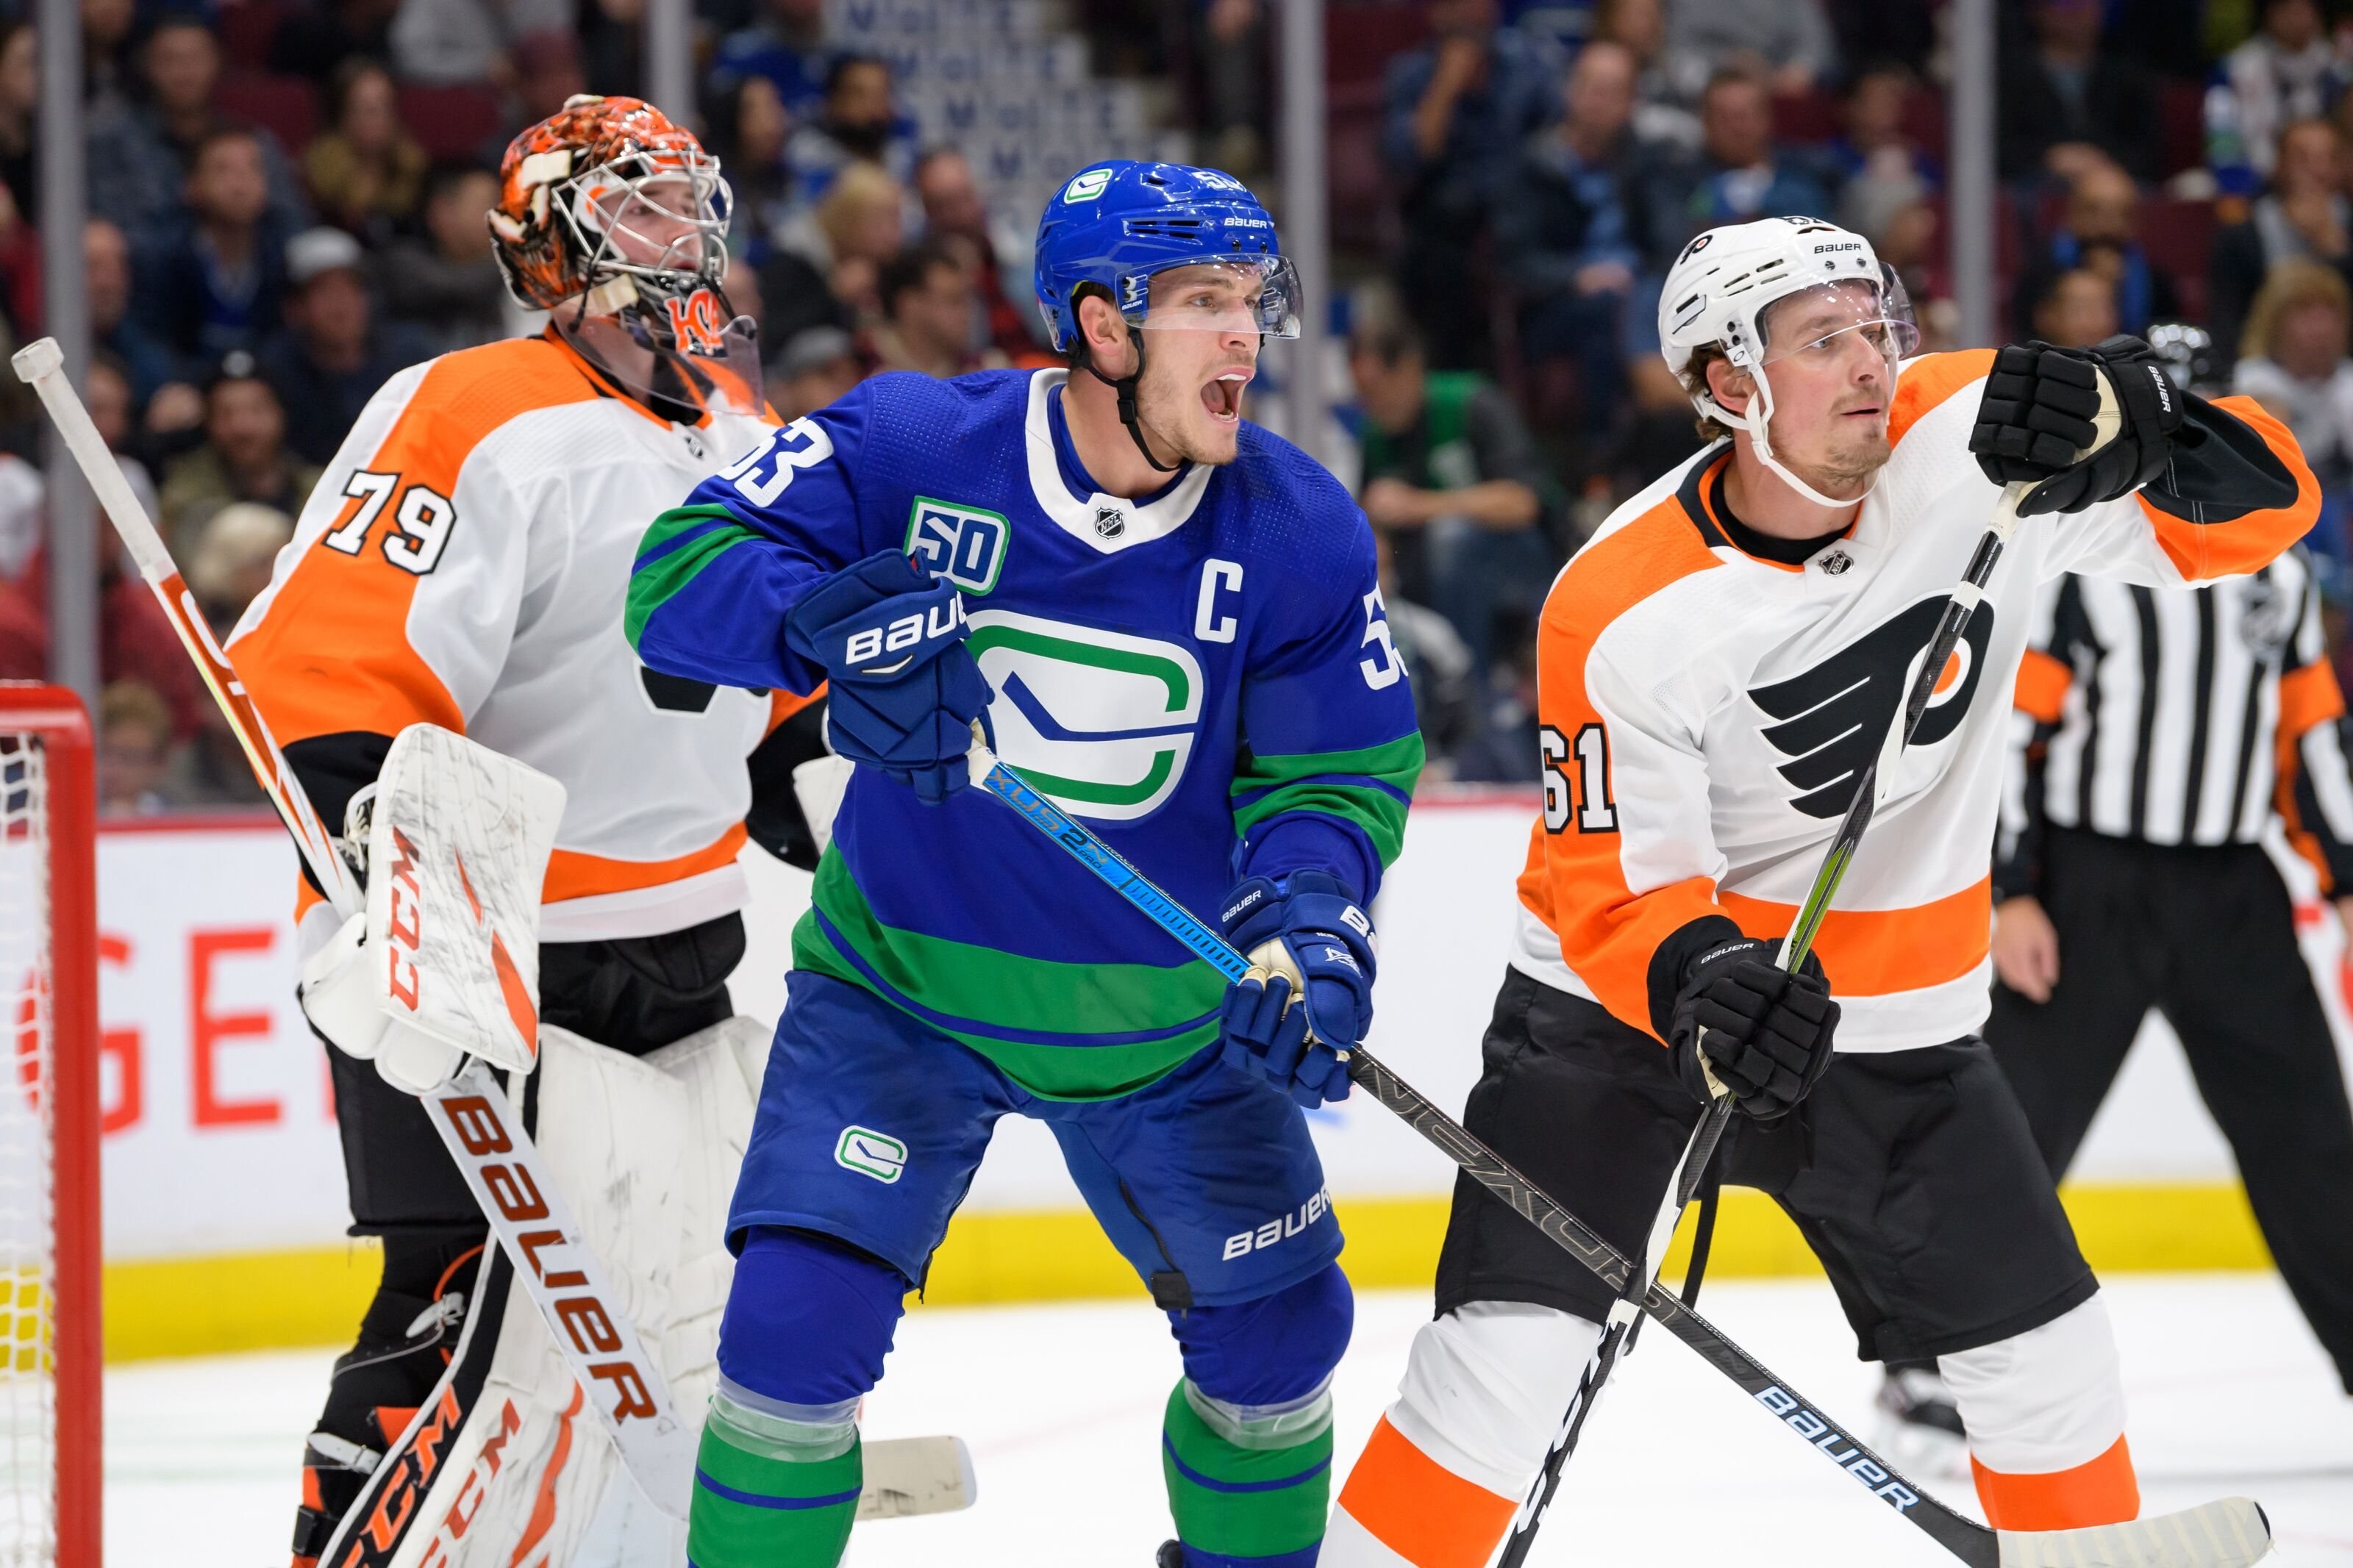 Philadelphia Flyers Fall To Vancouver Canucks 3-2 In A Shootout